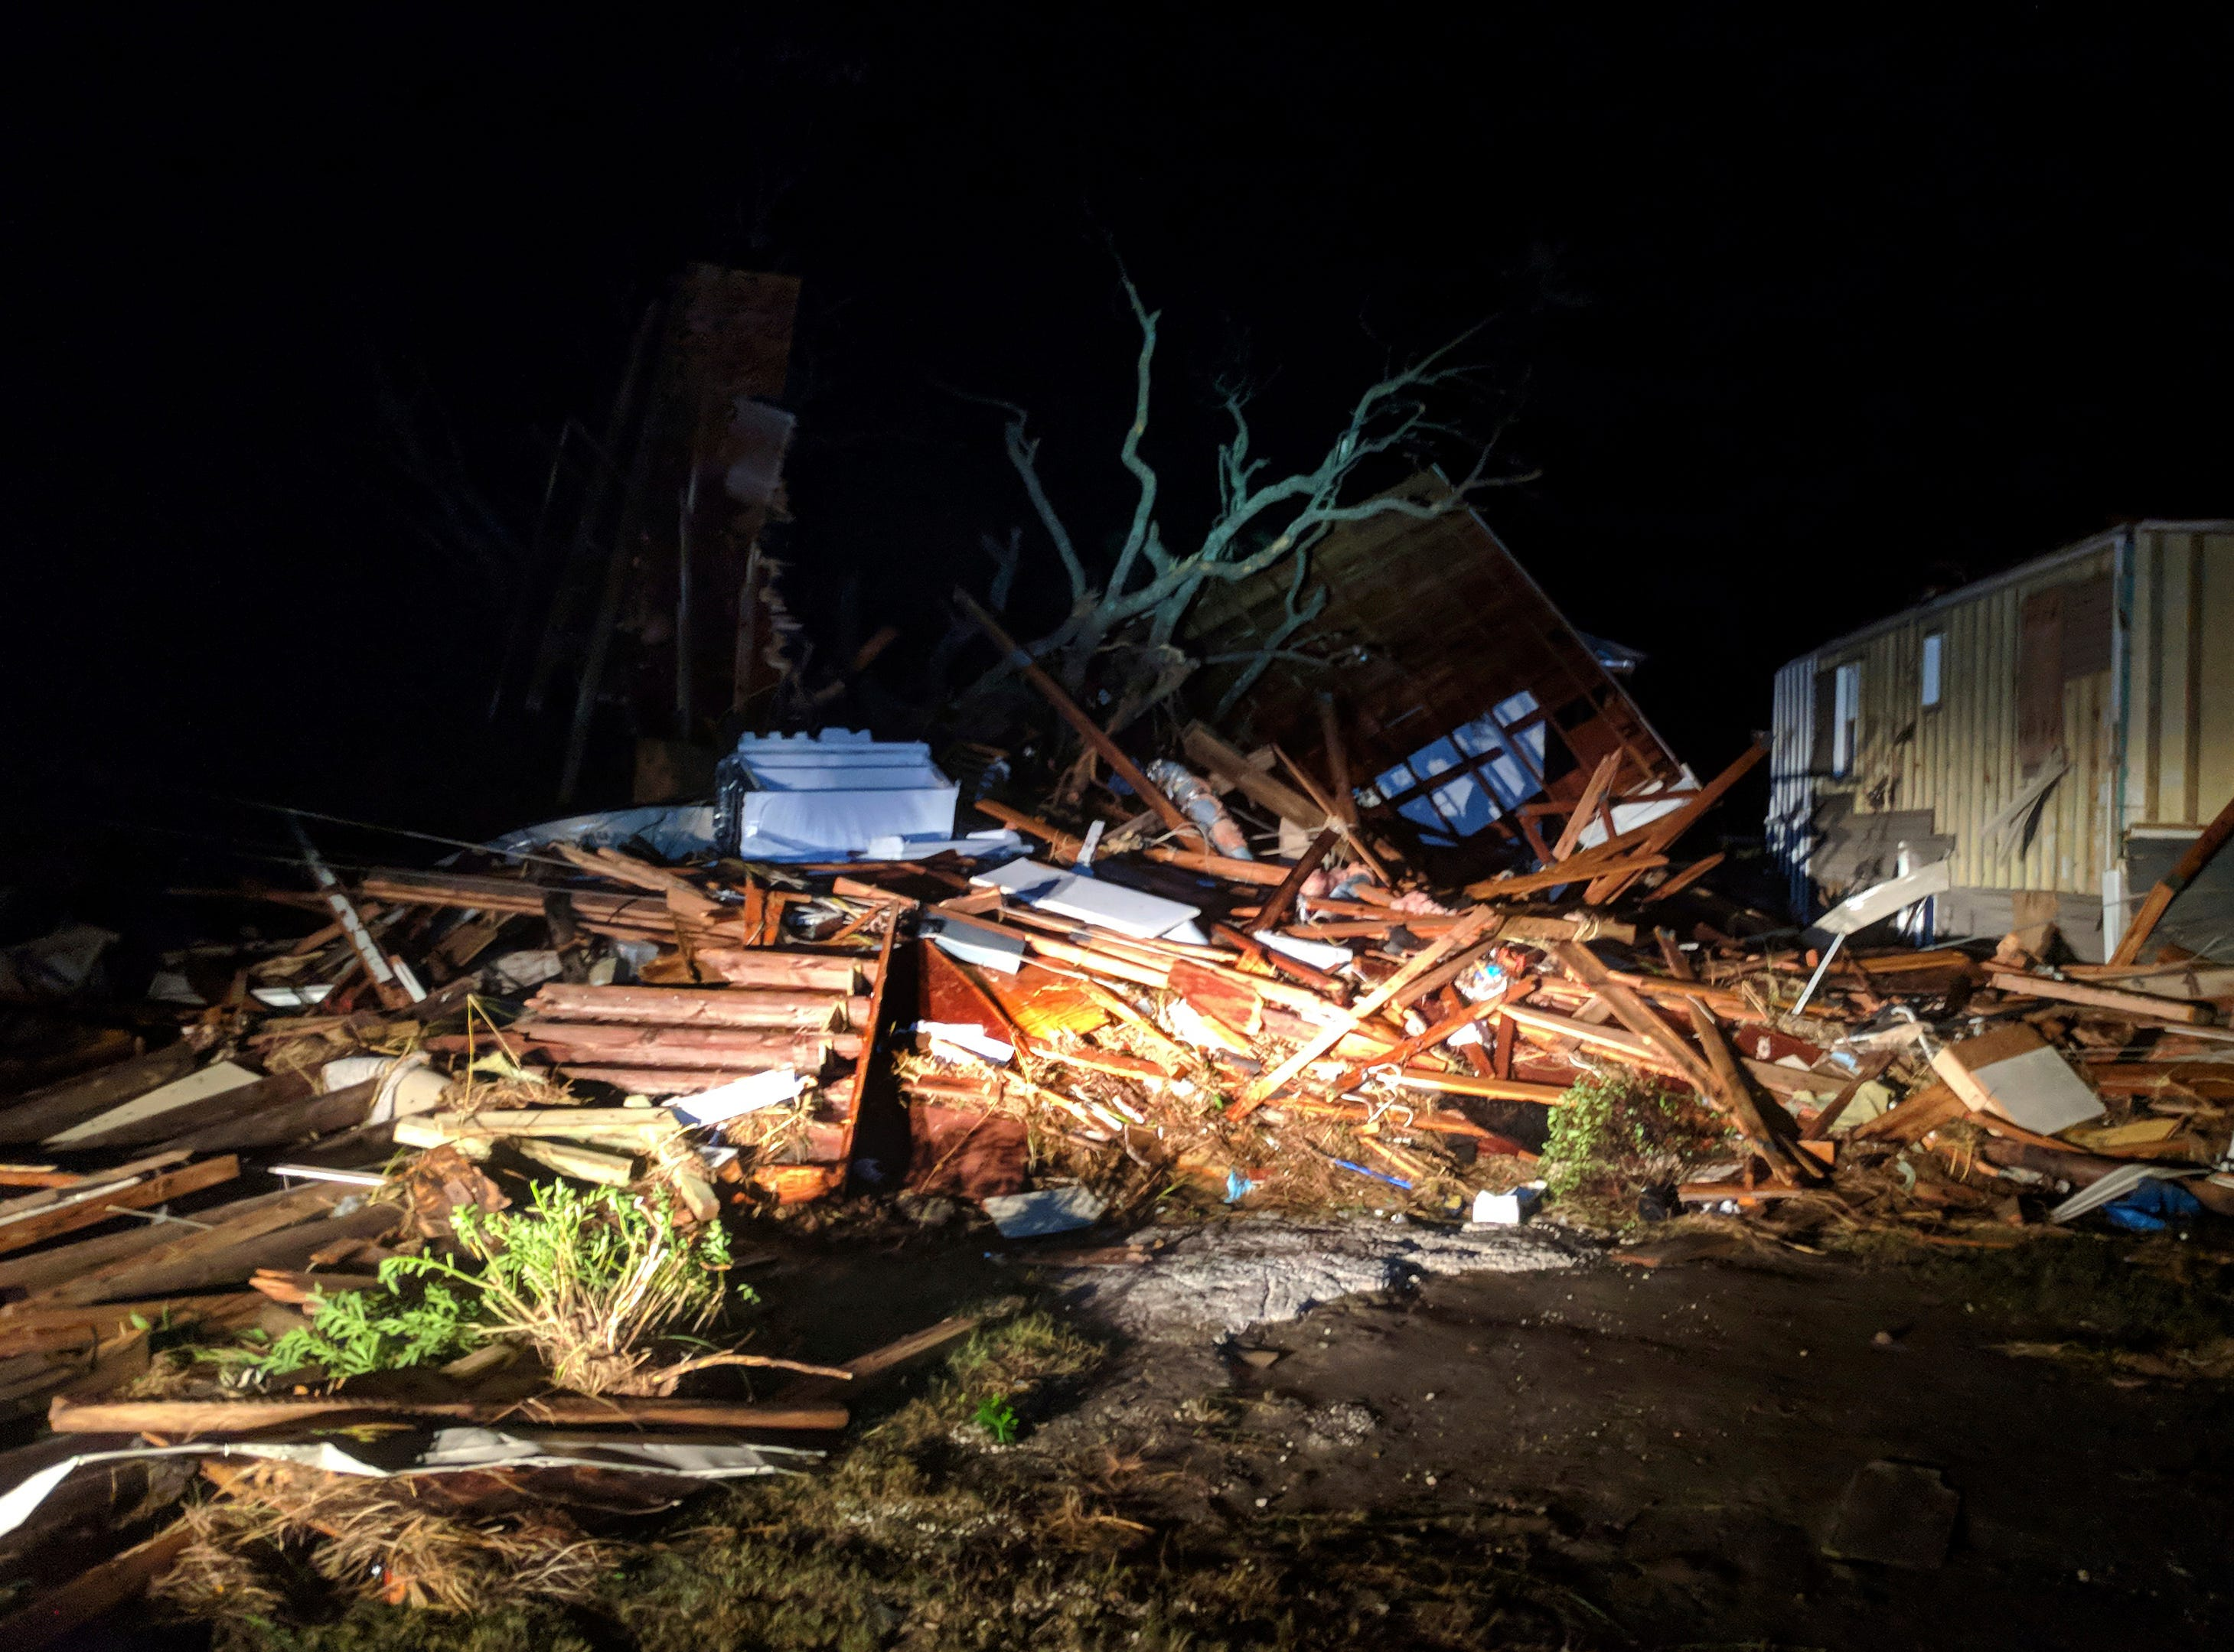 Debris scatters an area in the aftermath of Hurricane Michael in Mexico Beach, Fla., early Thursday, Oct. 11, 2018. (Douglas R. Clifford/Tampa Bay Times via AP)